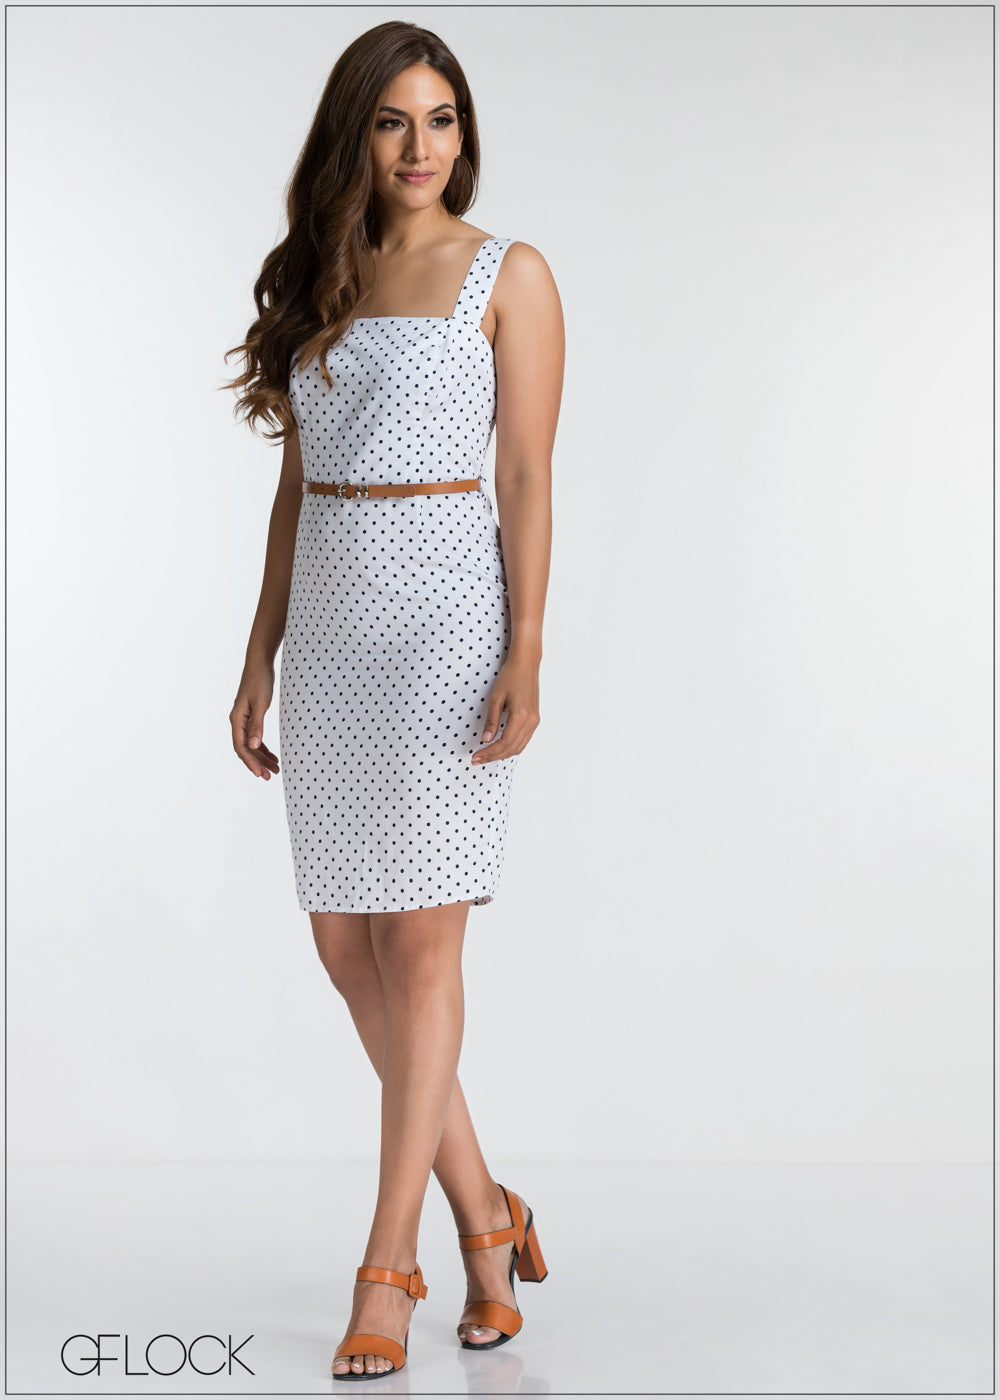 Polka Dot Bodycon Dress - GFLOCK.LK